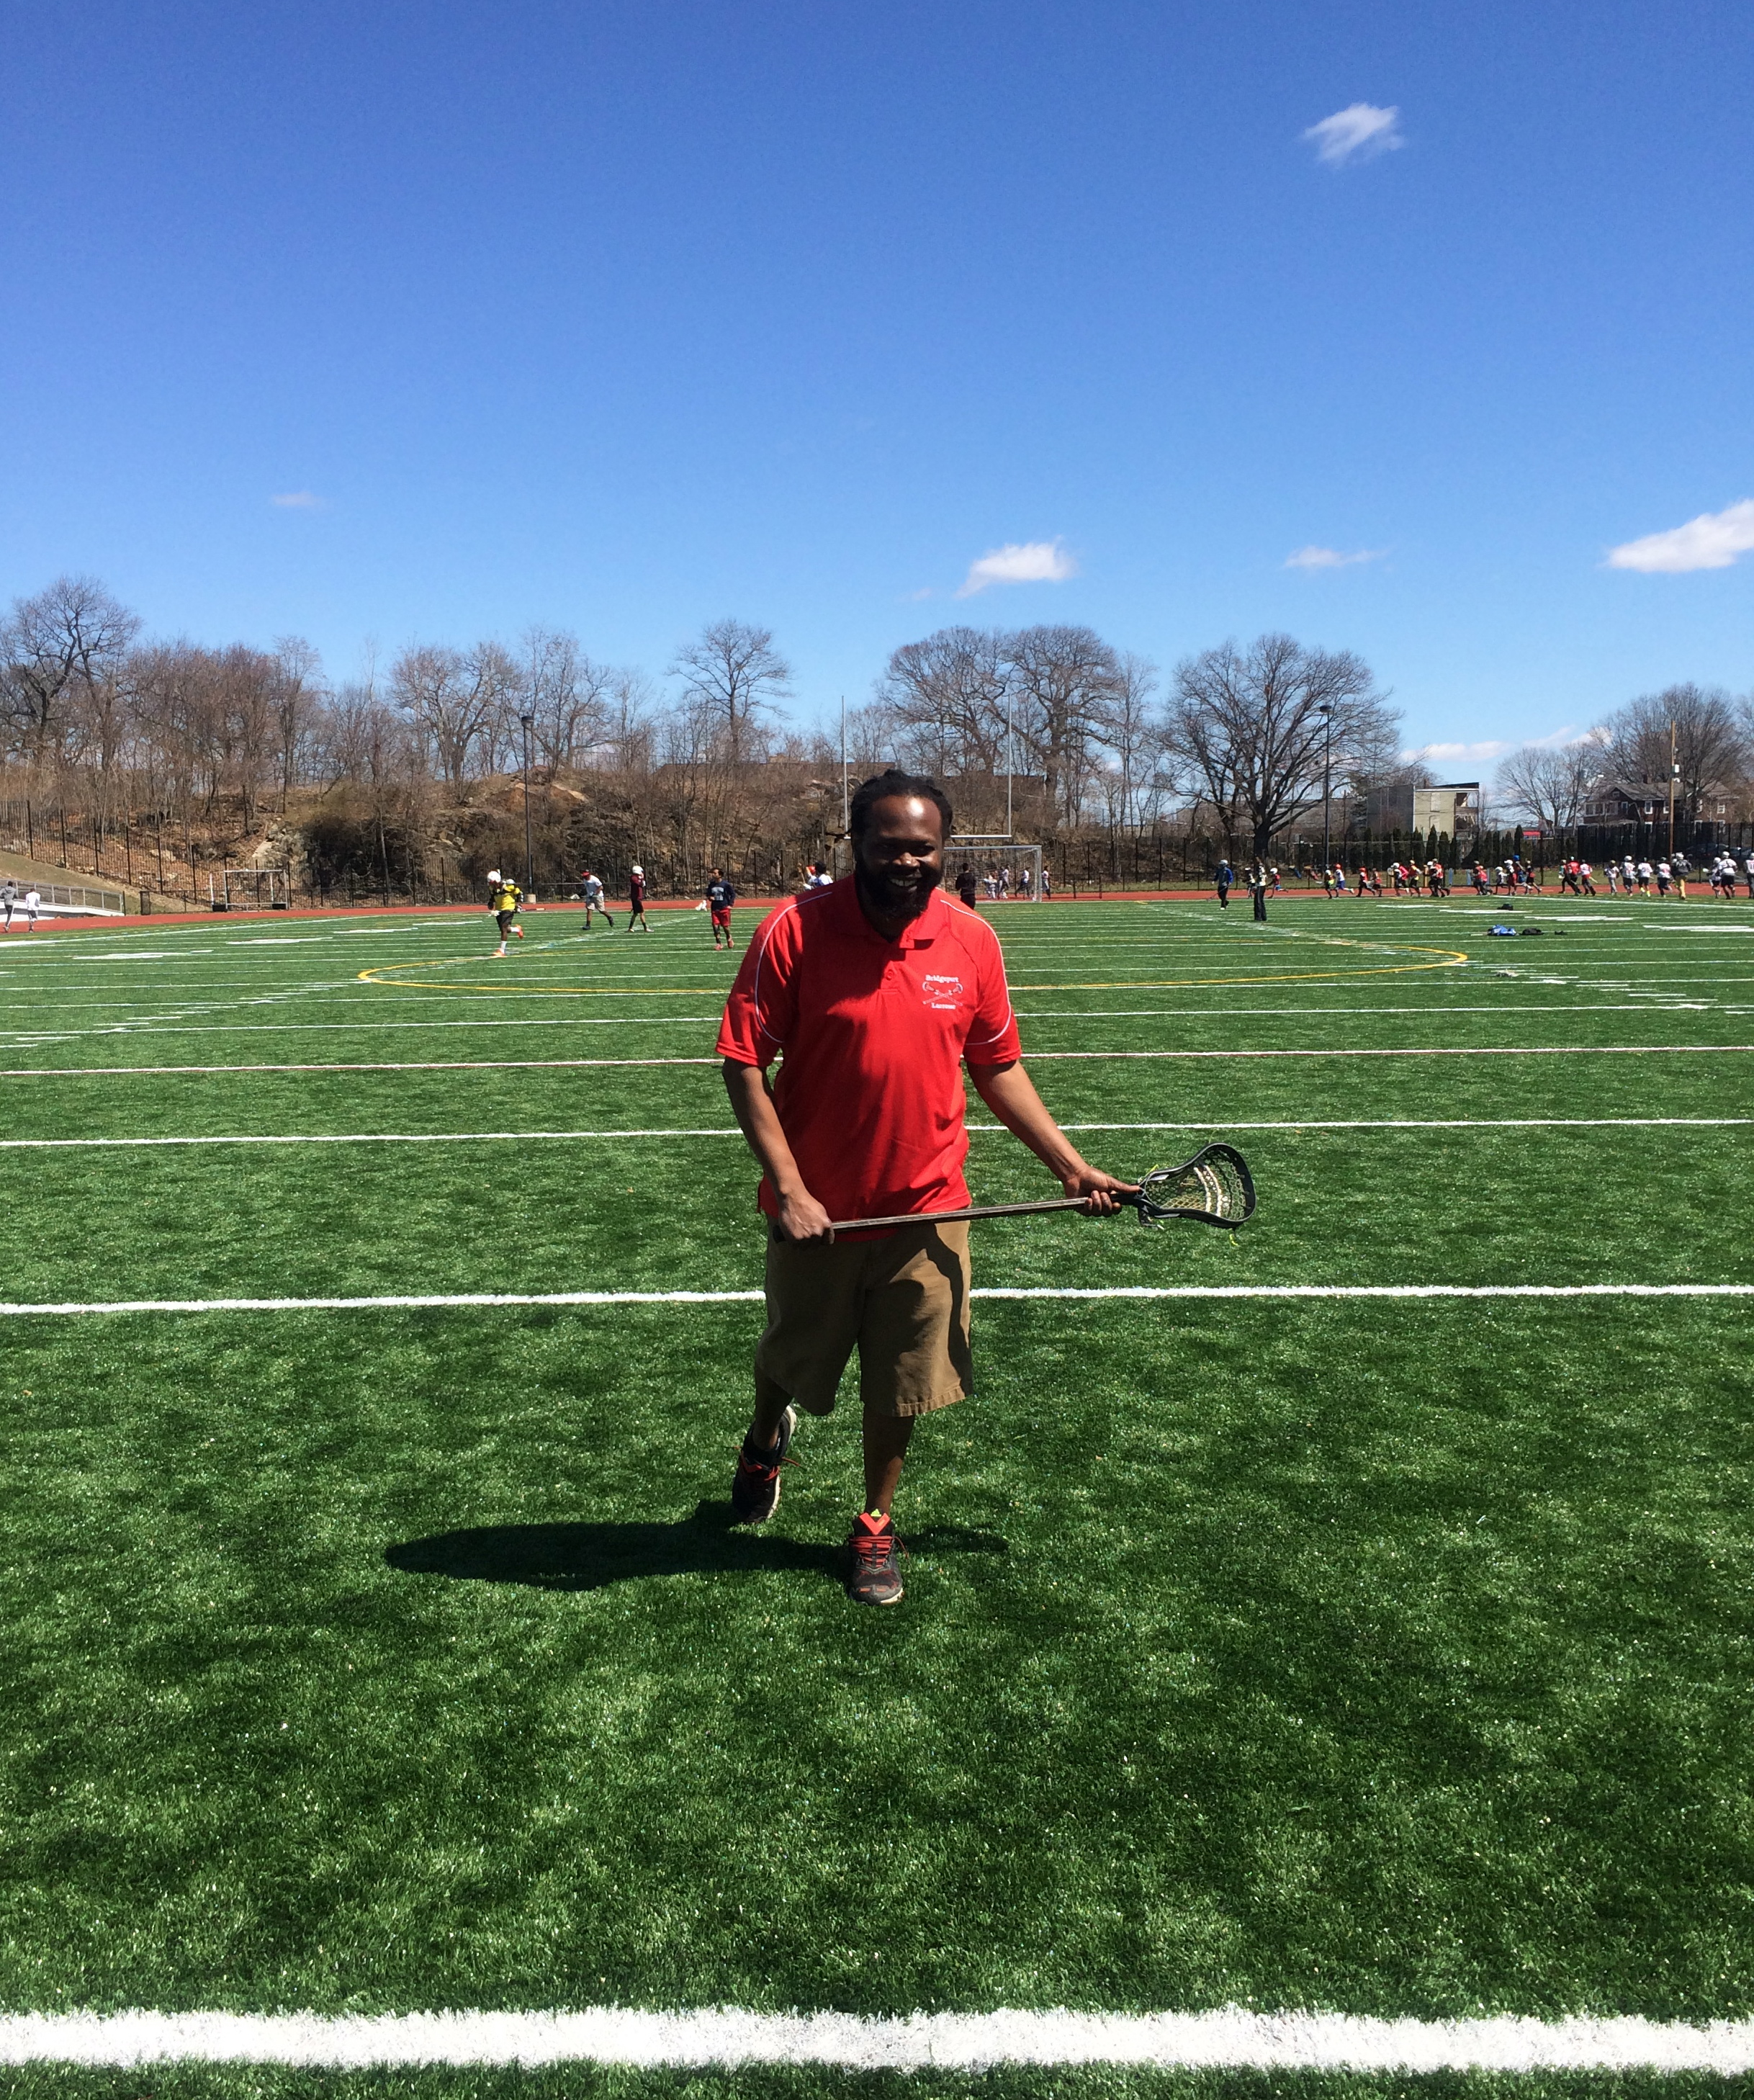 White plains flag football league